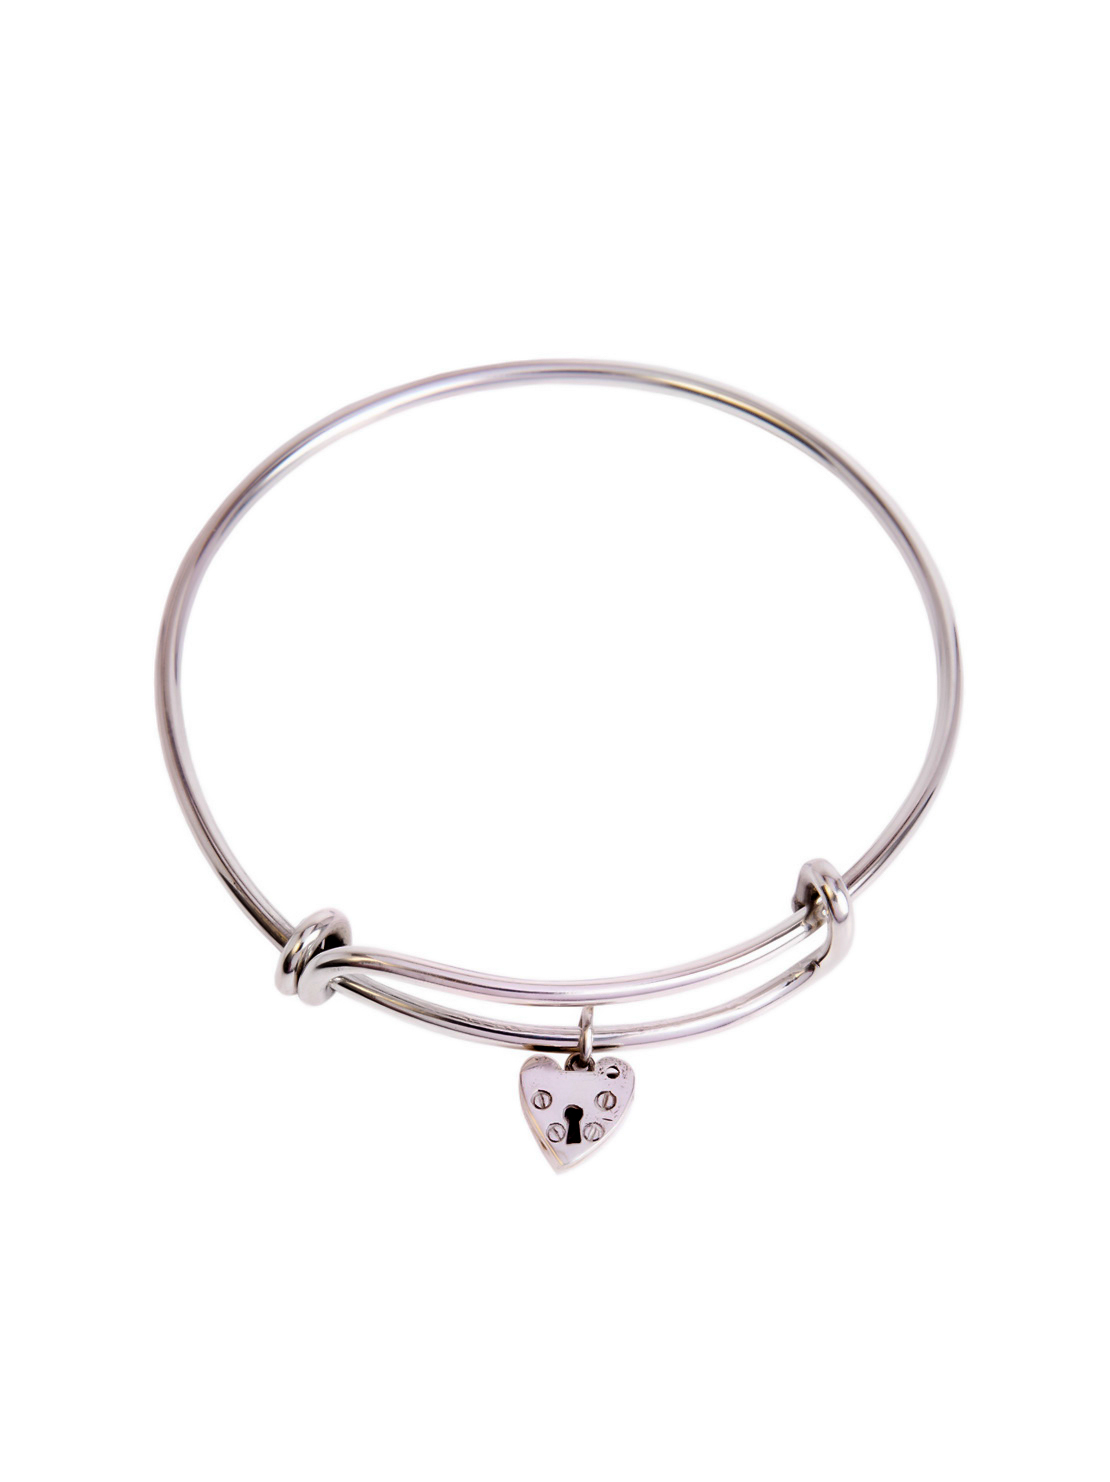 help it front who will alex ani those silver and always bangles at or tone for bracelet be to given albus in ask charm hogwarts harry potter two br gold bangle